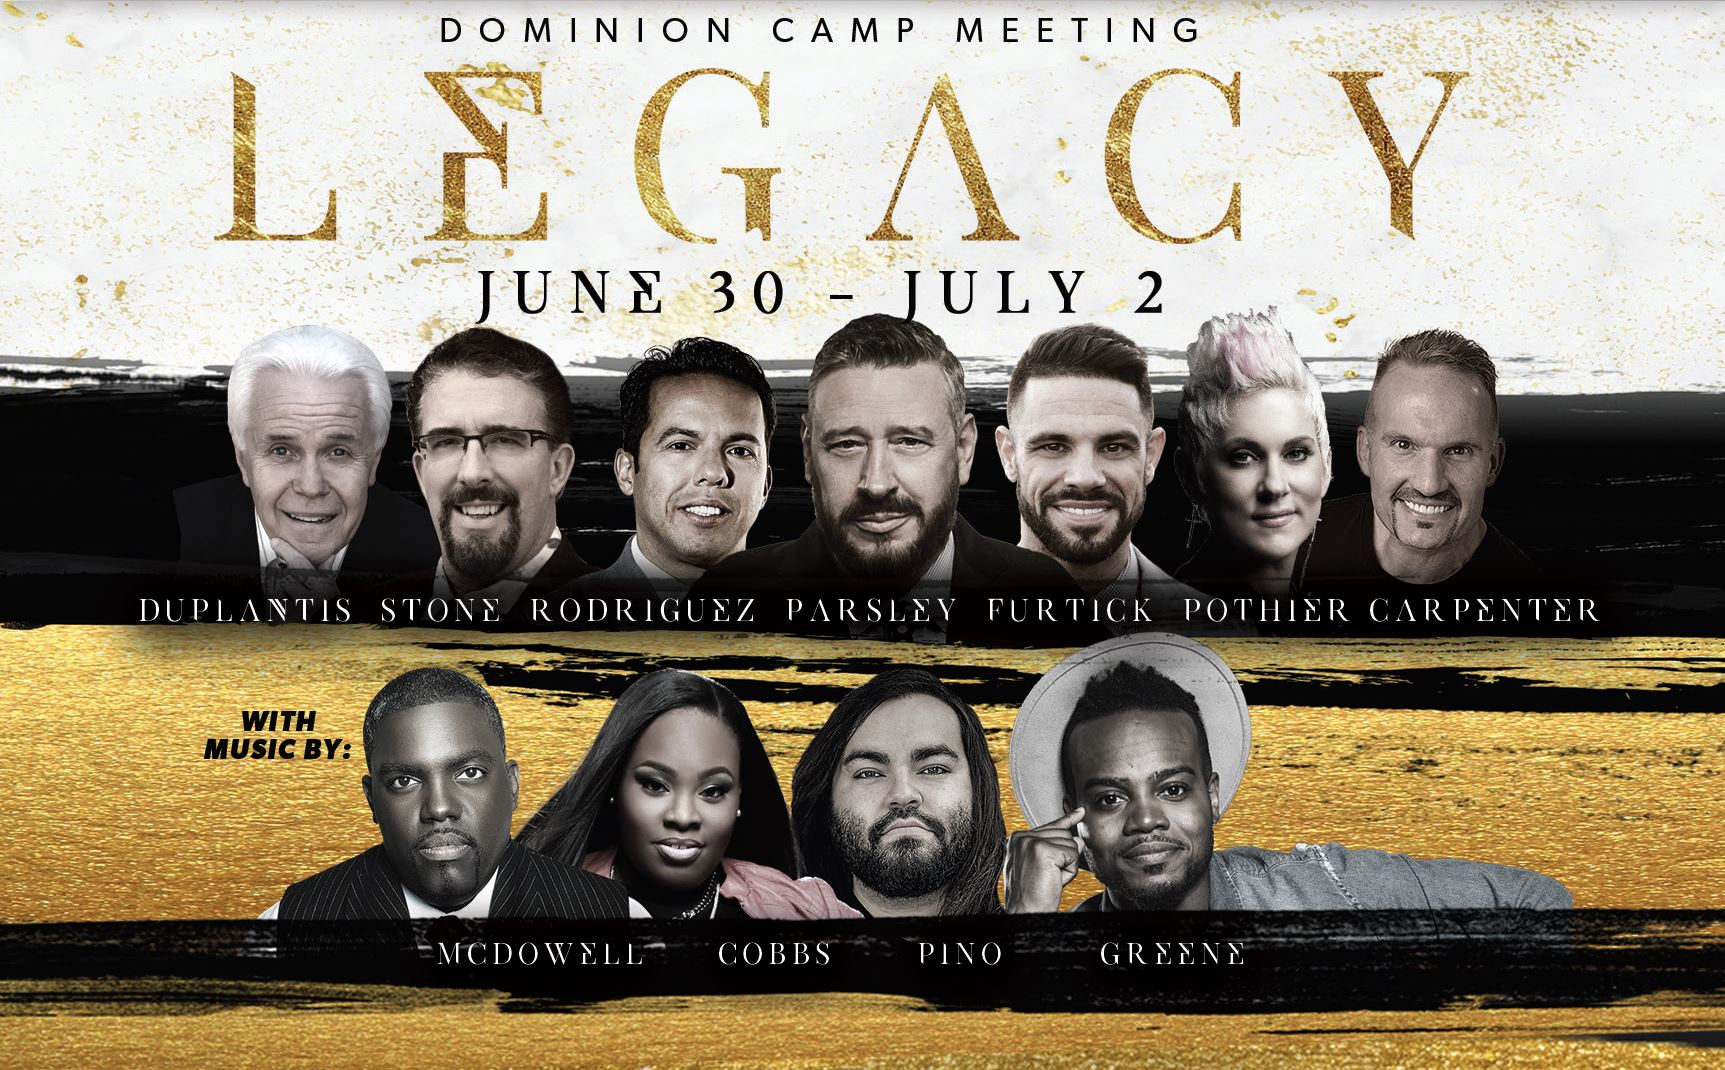 Dominion Camp Meeting  LEGACY | June 30 - July 2 | Duplantis, Stone, Rodriguez, Parsley, Furtick, Pothier, Carpenter | With music by: McDowell, Cobbs, Pino, Greene